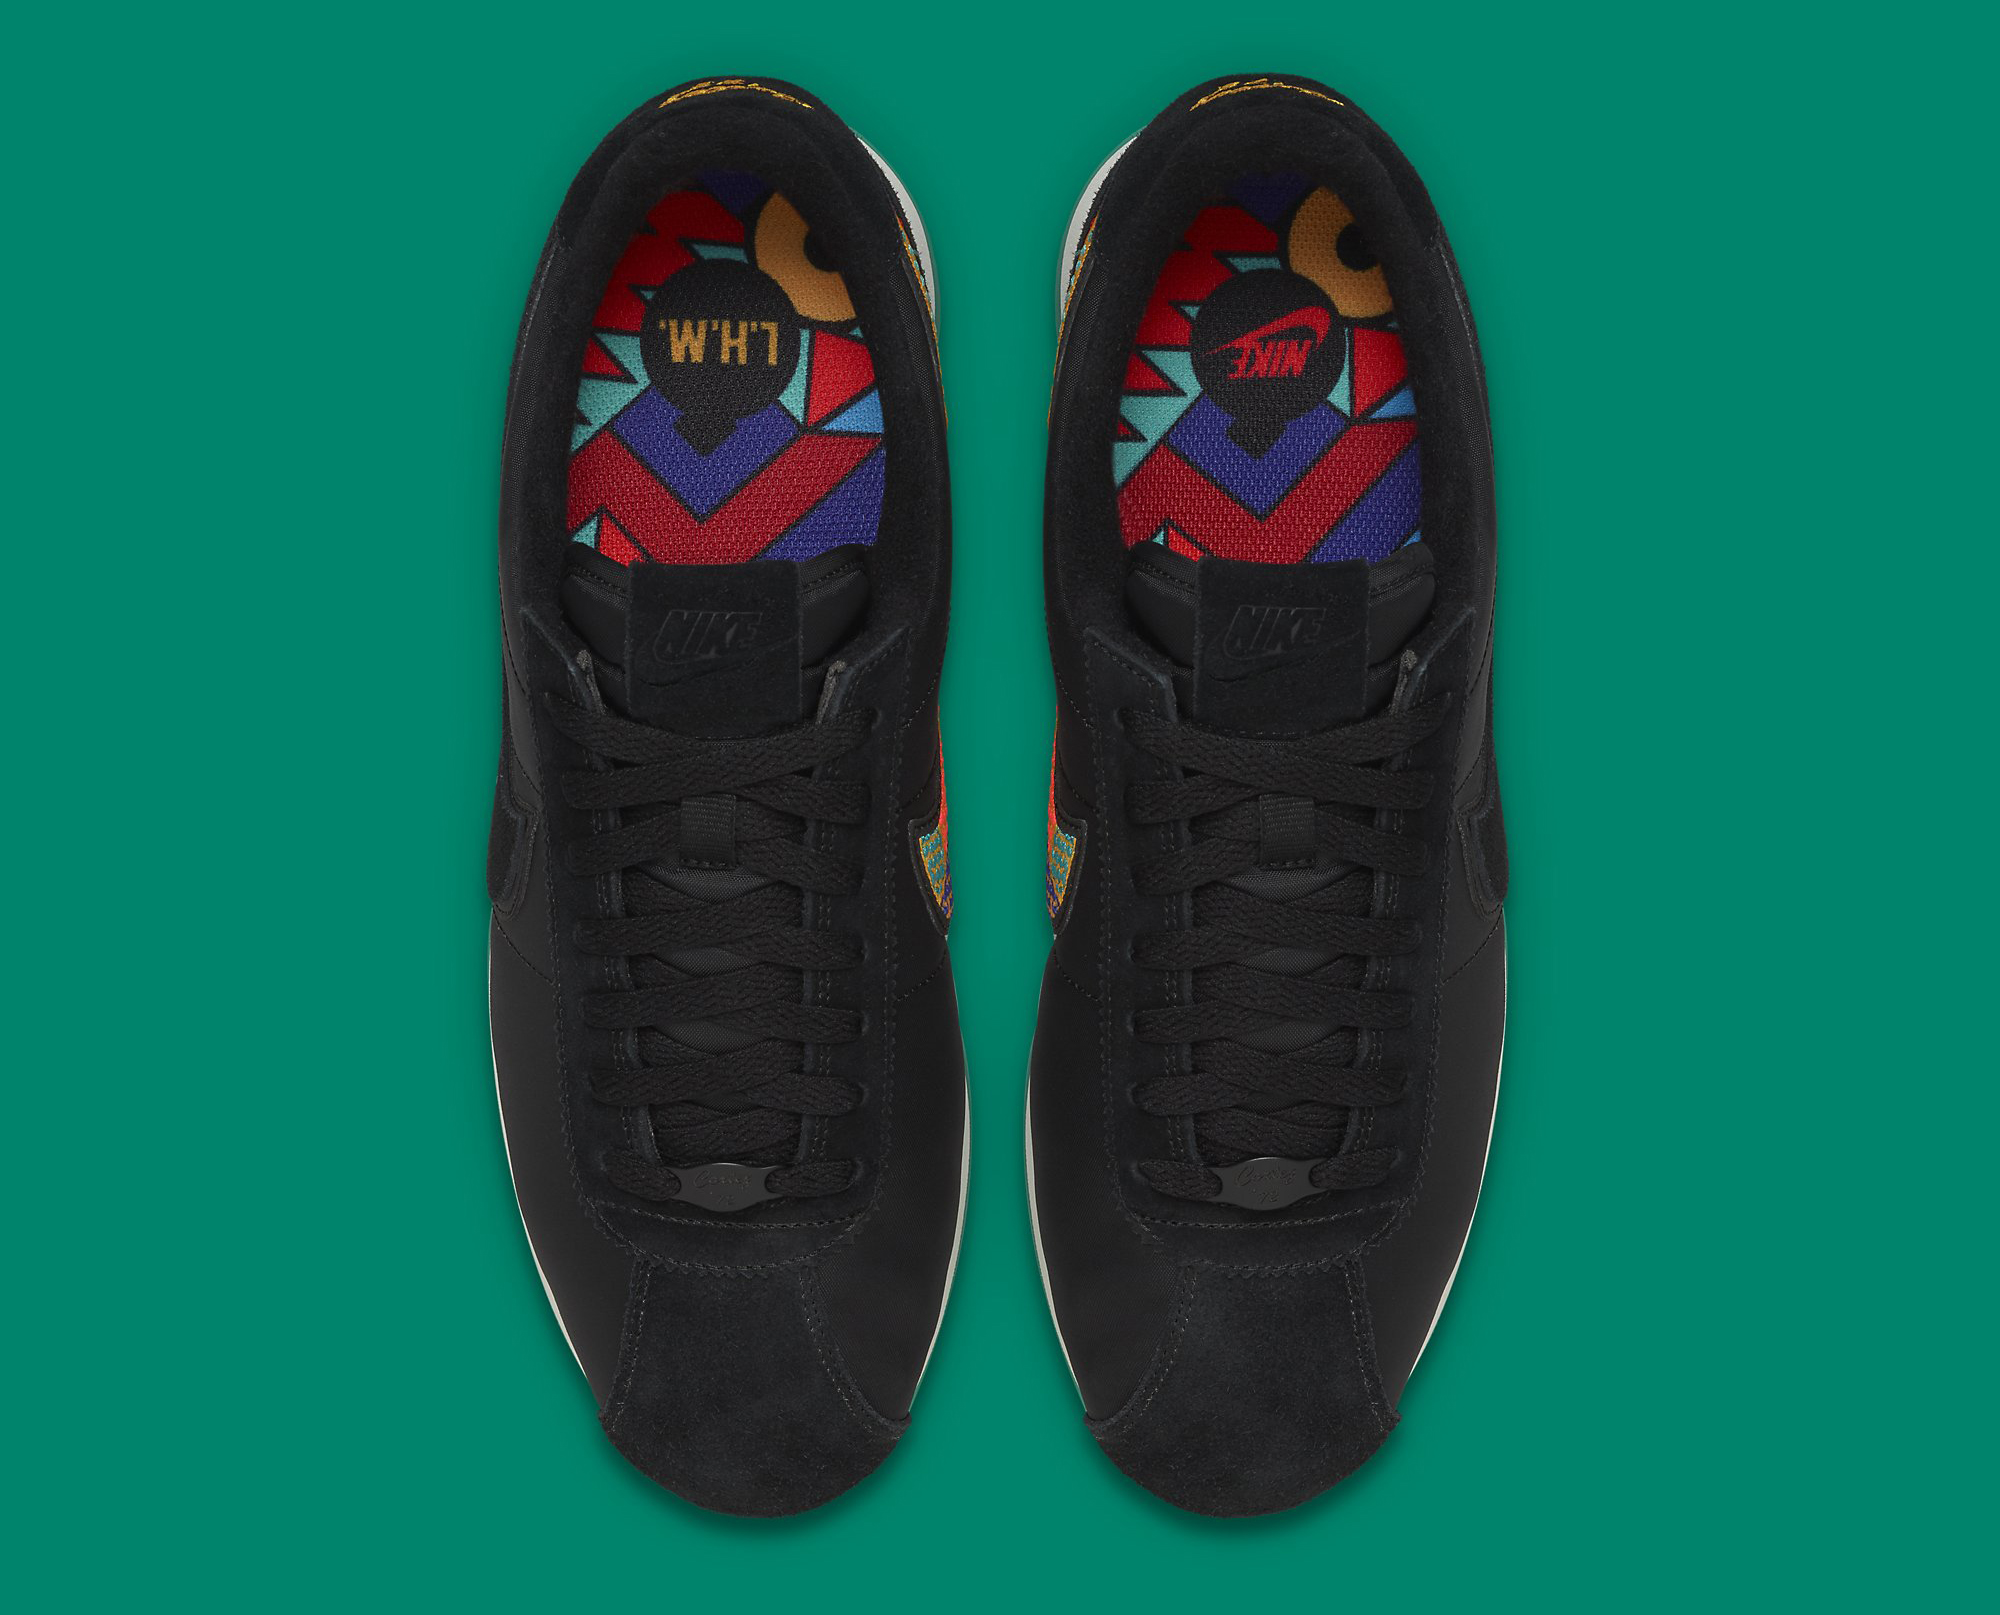 official photos de3cd cec08 Image via Nike Nike Cortez Latino Heritage Month 885407-001 Top